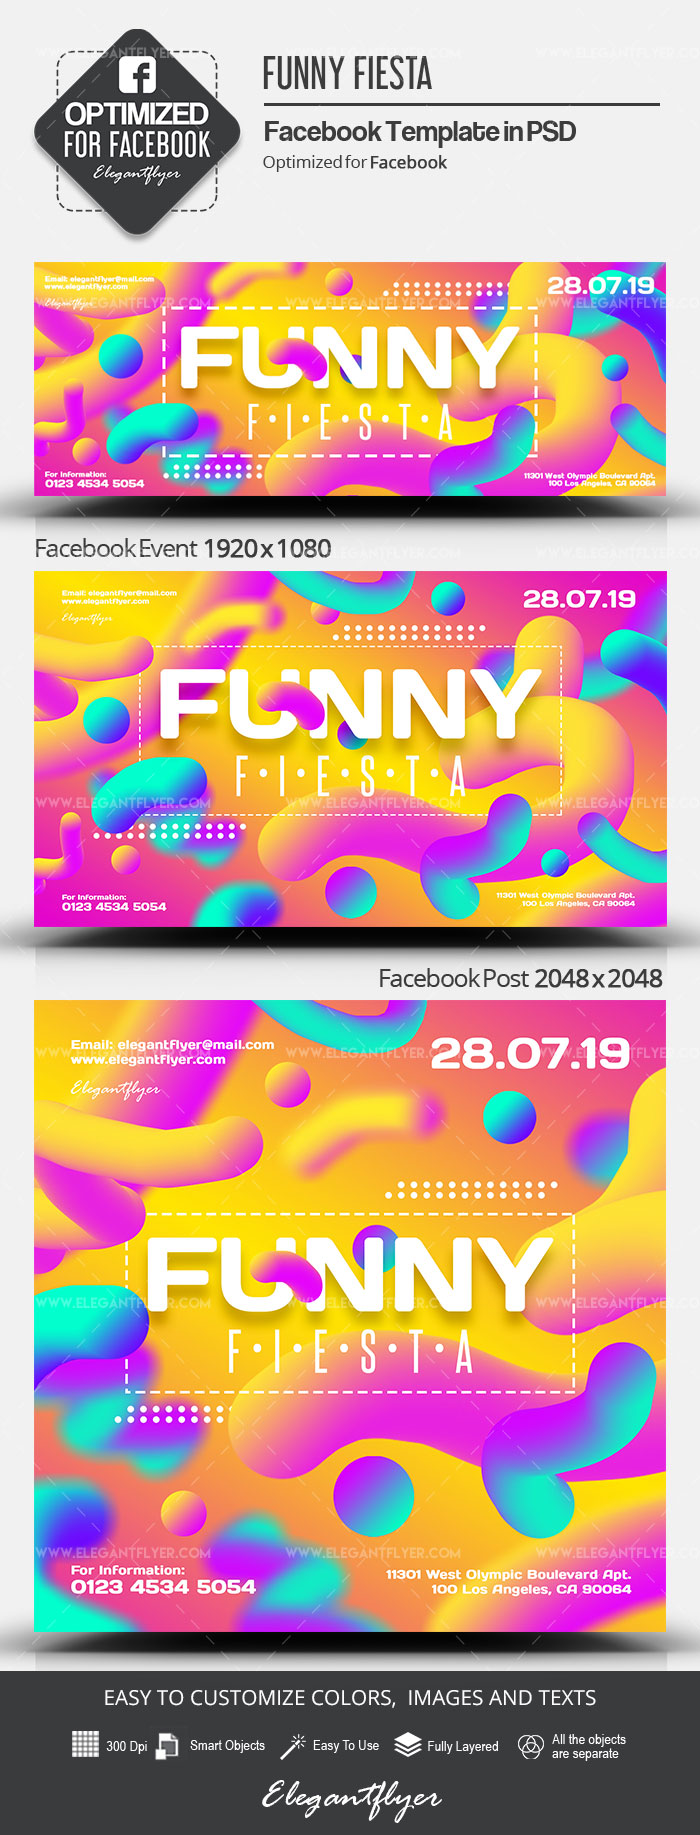 Funny Fiesta – Facebook Cover Template in PSD + Post + Event cover